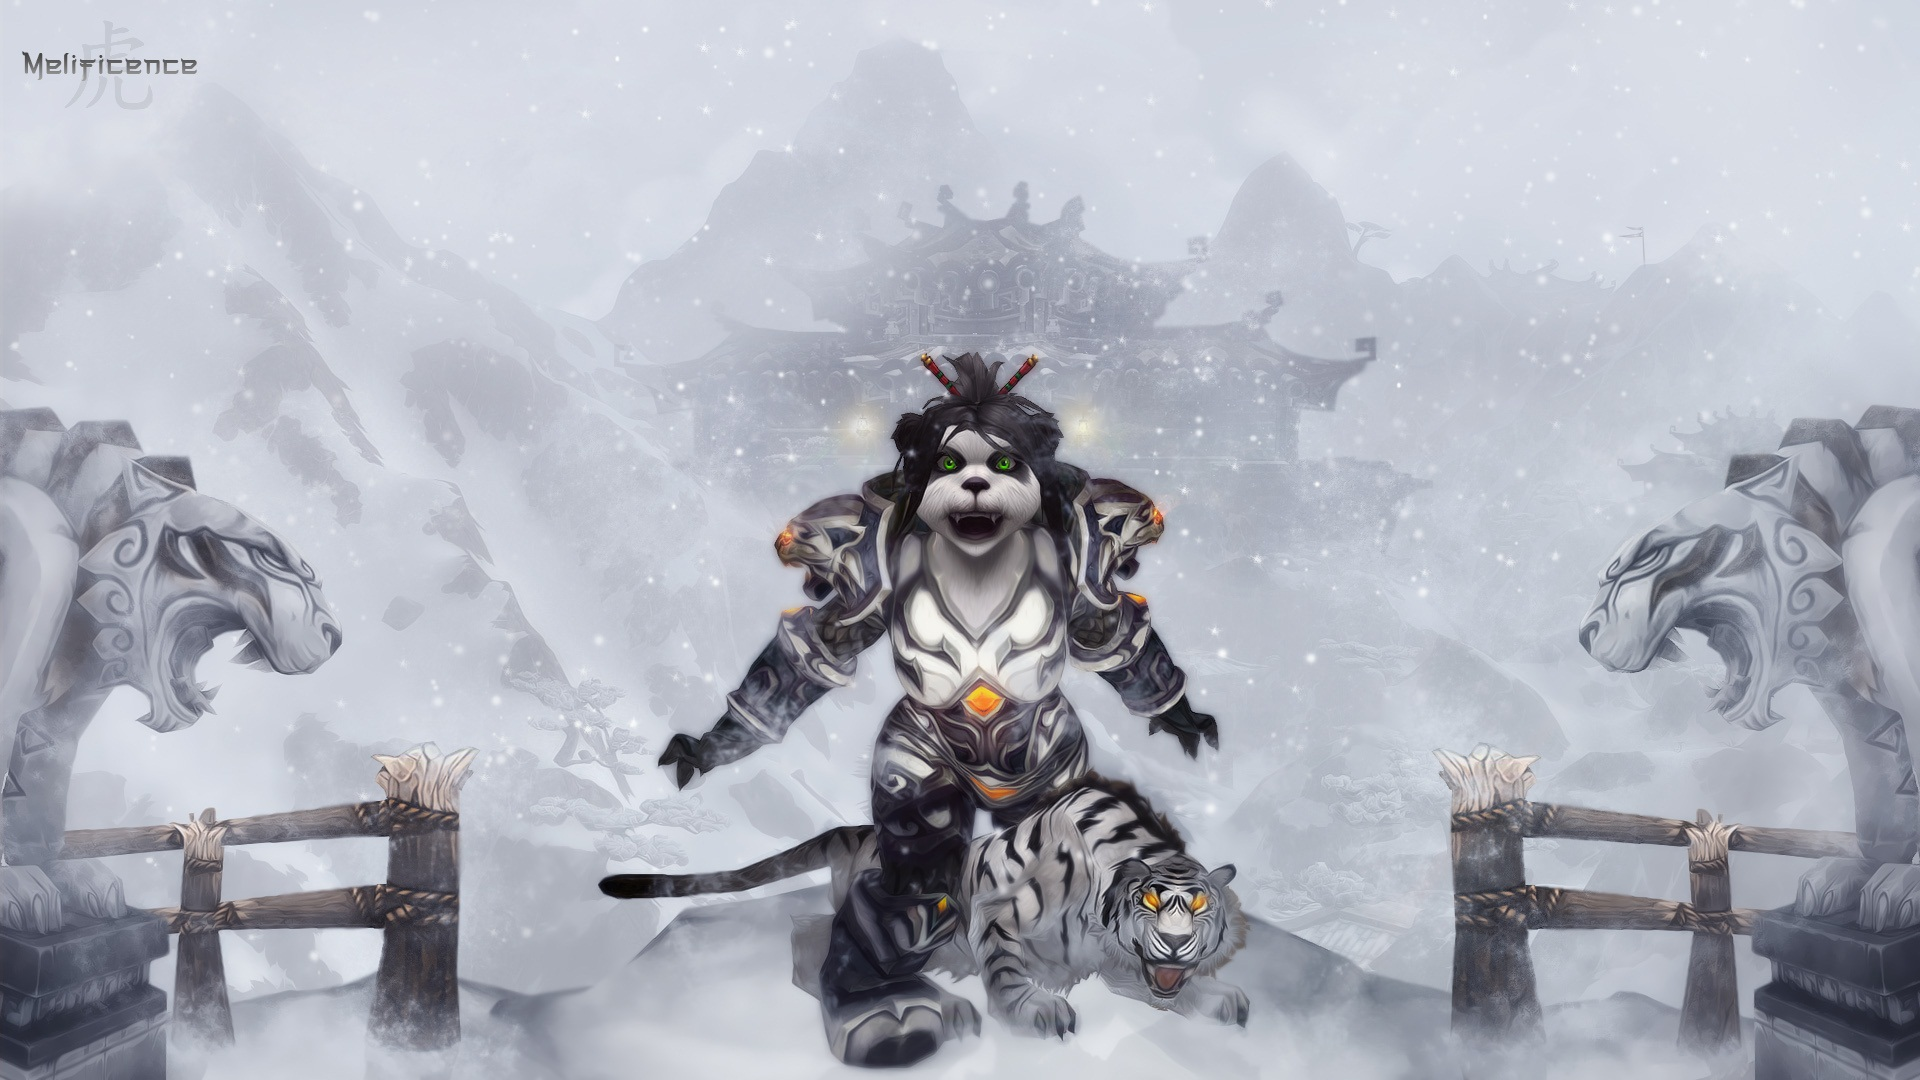 World of Warcraft: Mists of Pandaria HD wallpapers #4 ...